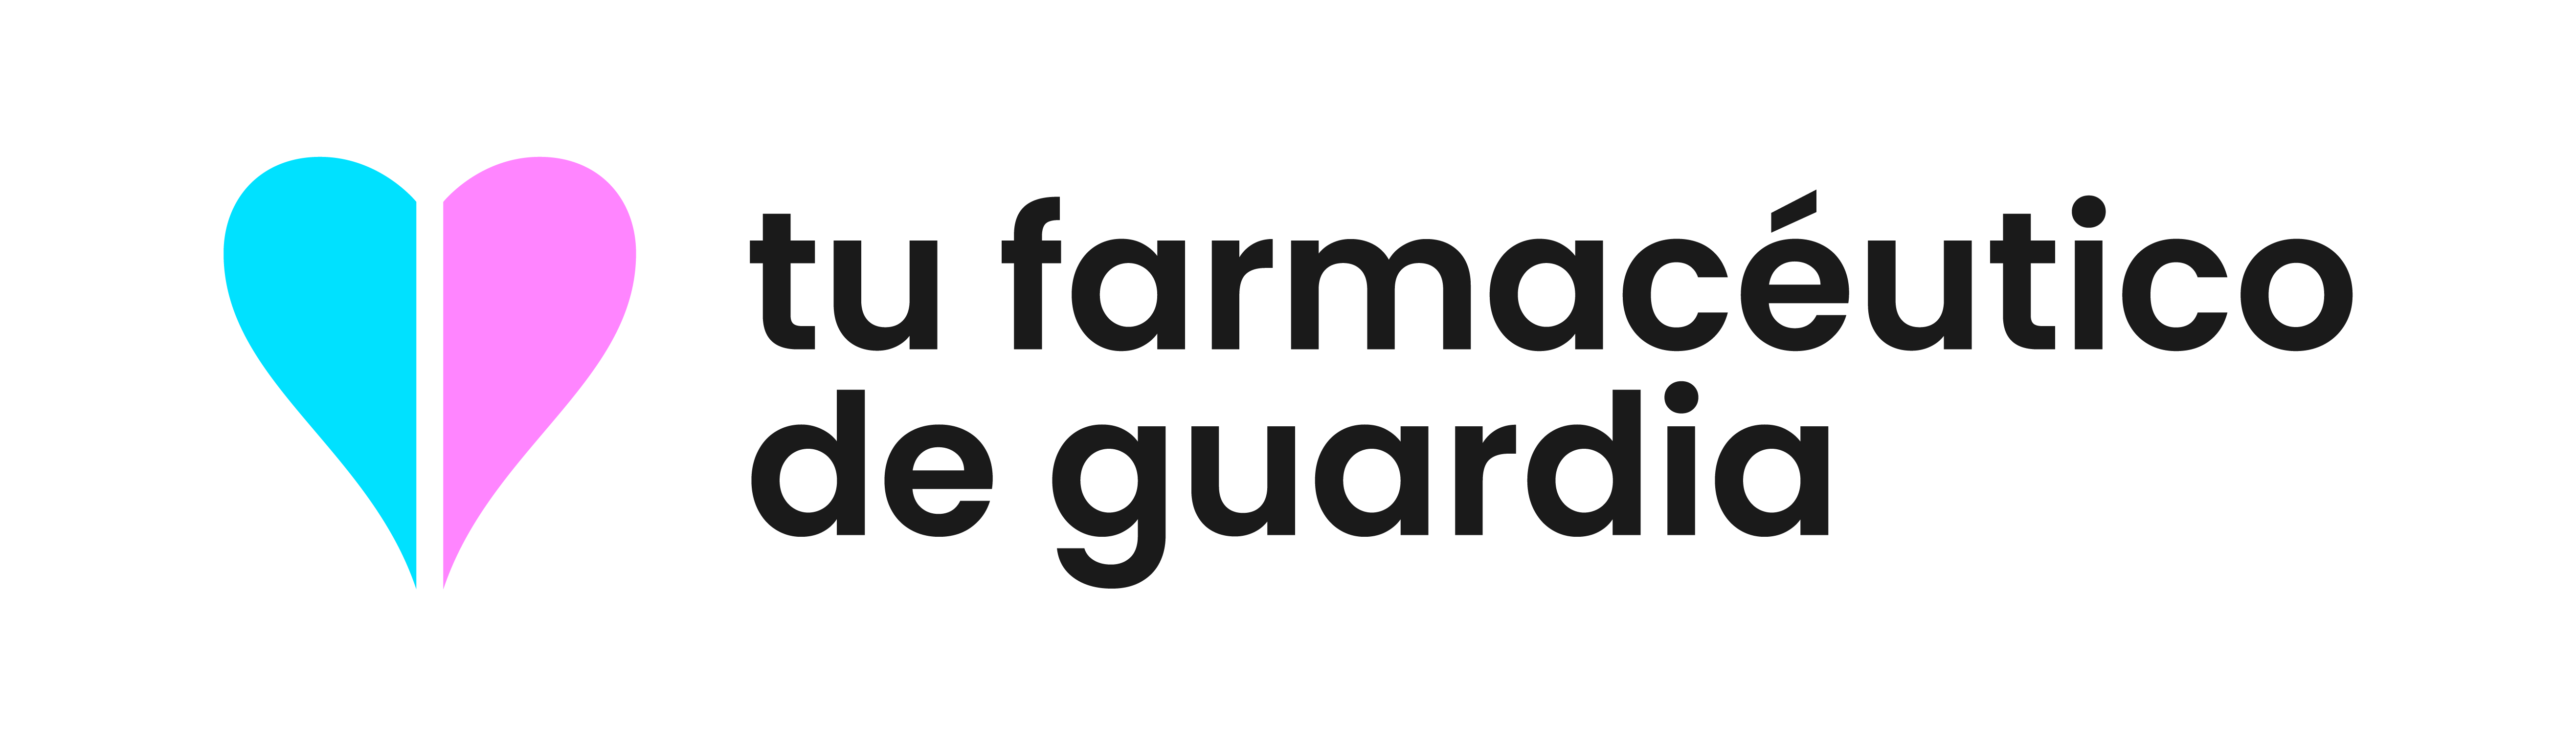 Tu Farmacéutico de Guardia